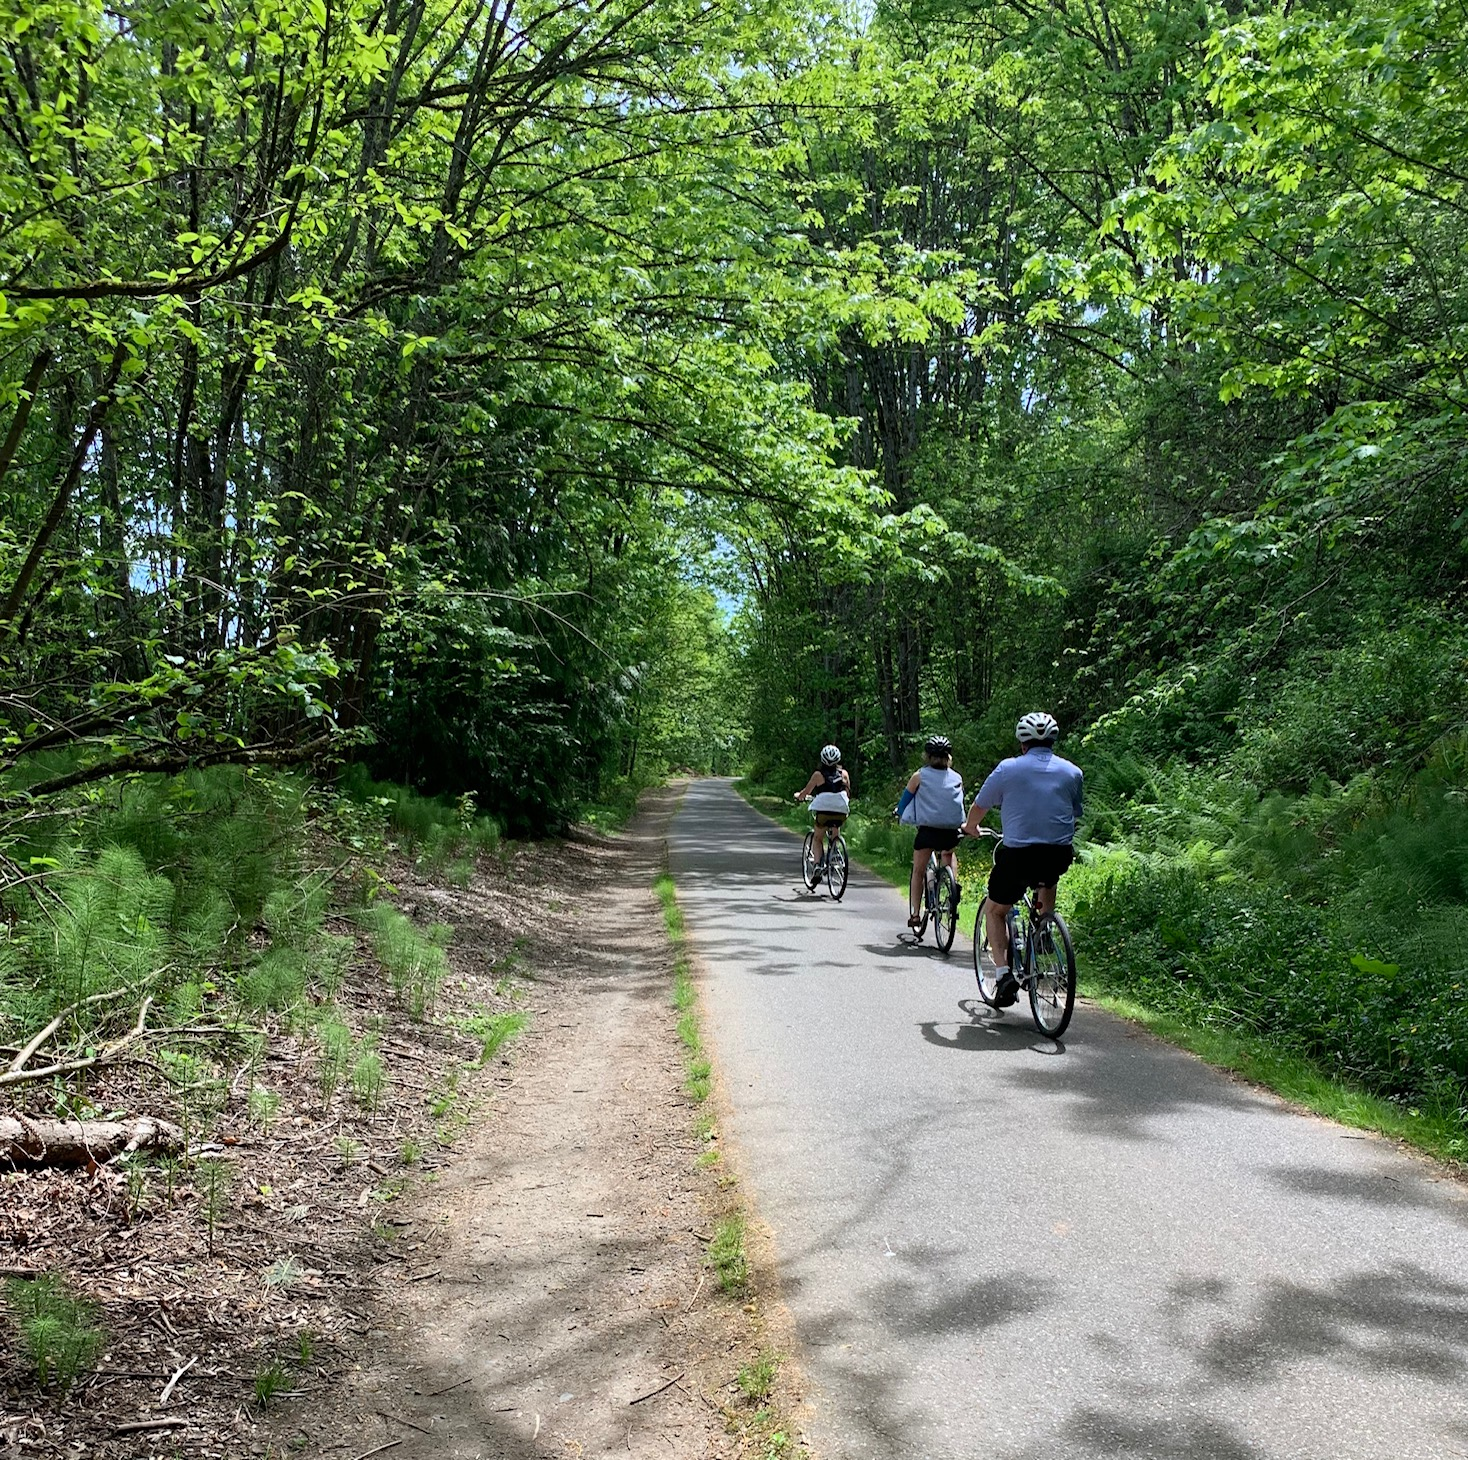 A photo of the bike tour on trail through trees.